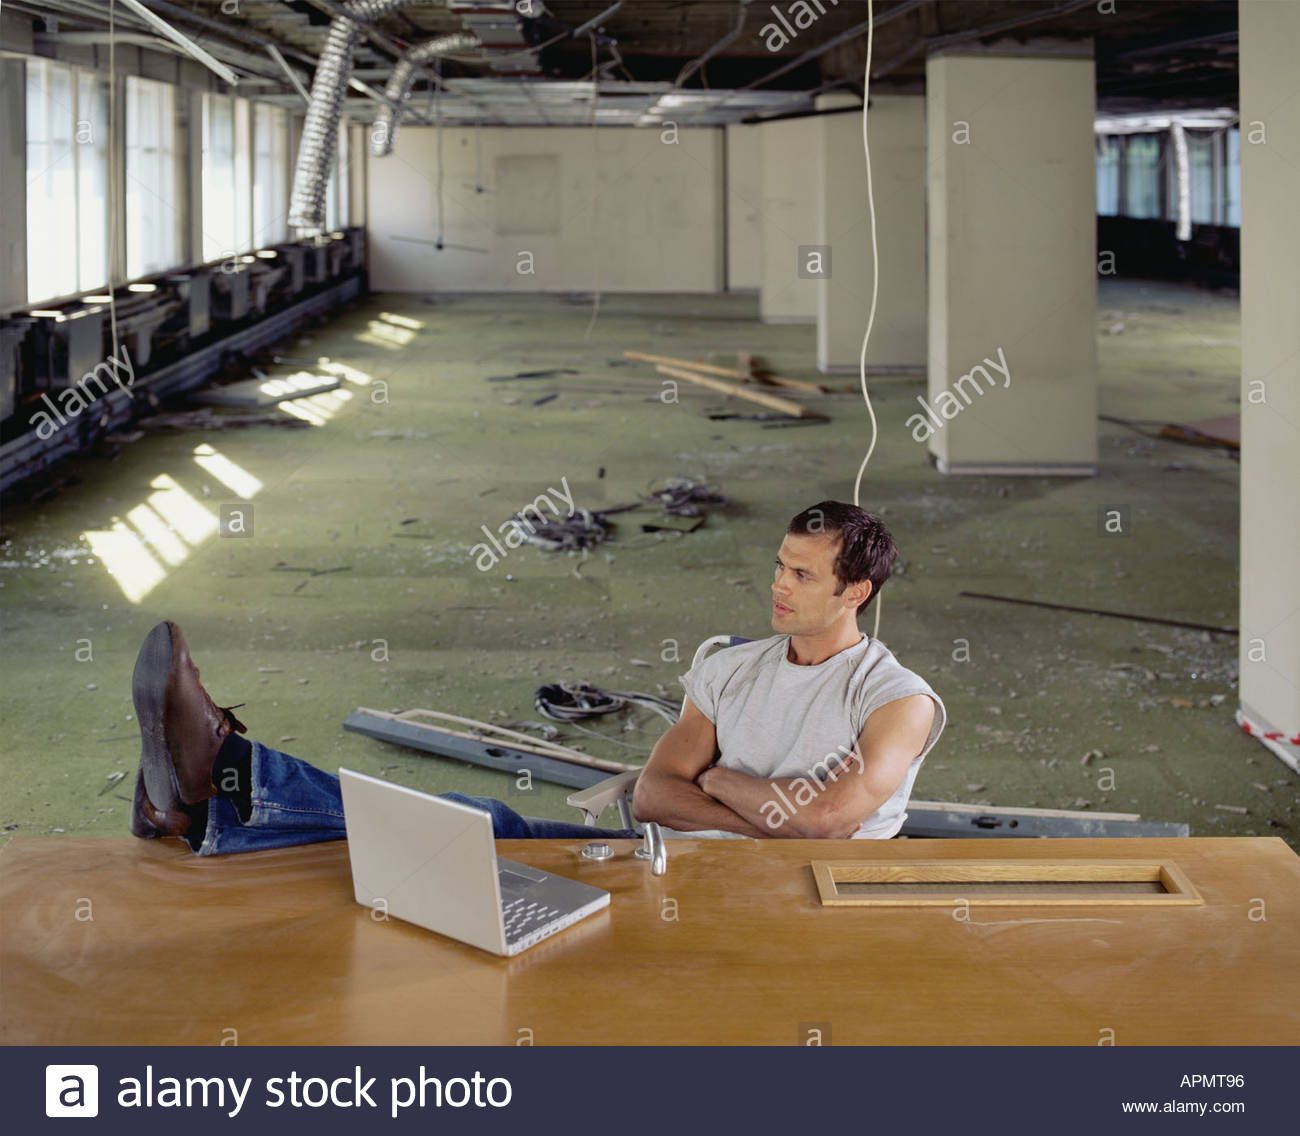 Image result for sitting alone in office